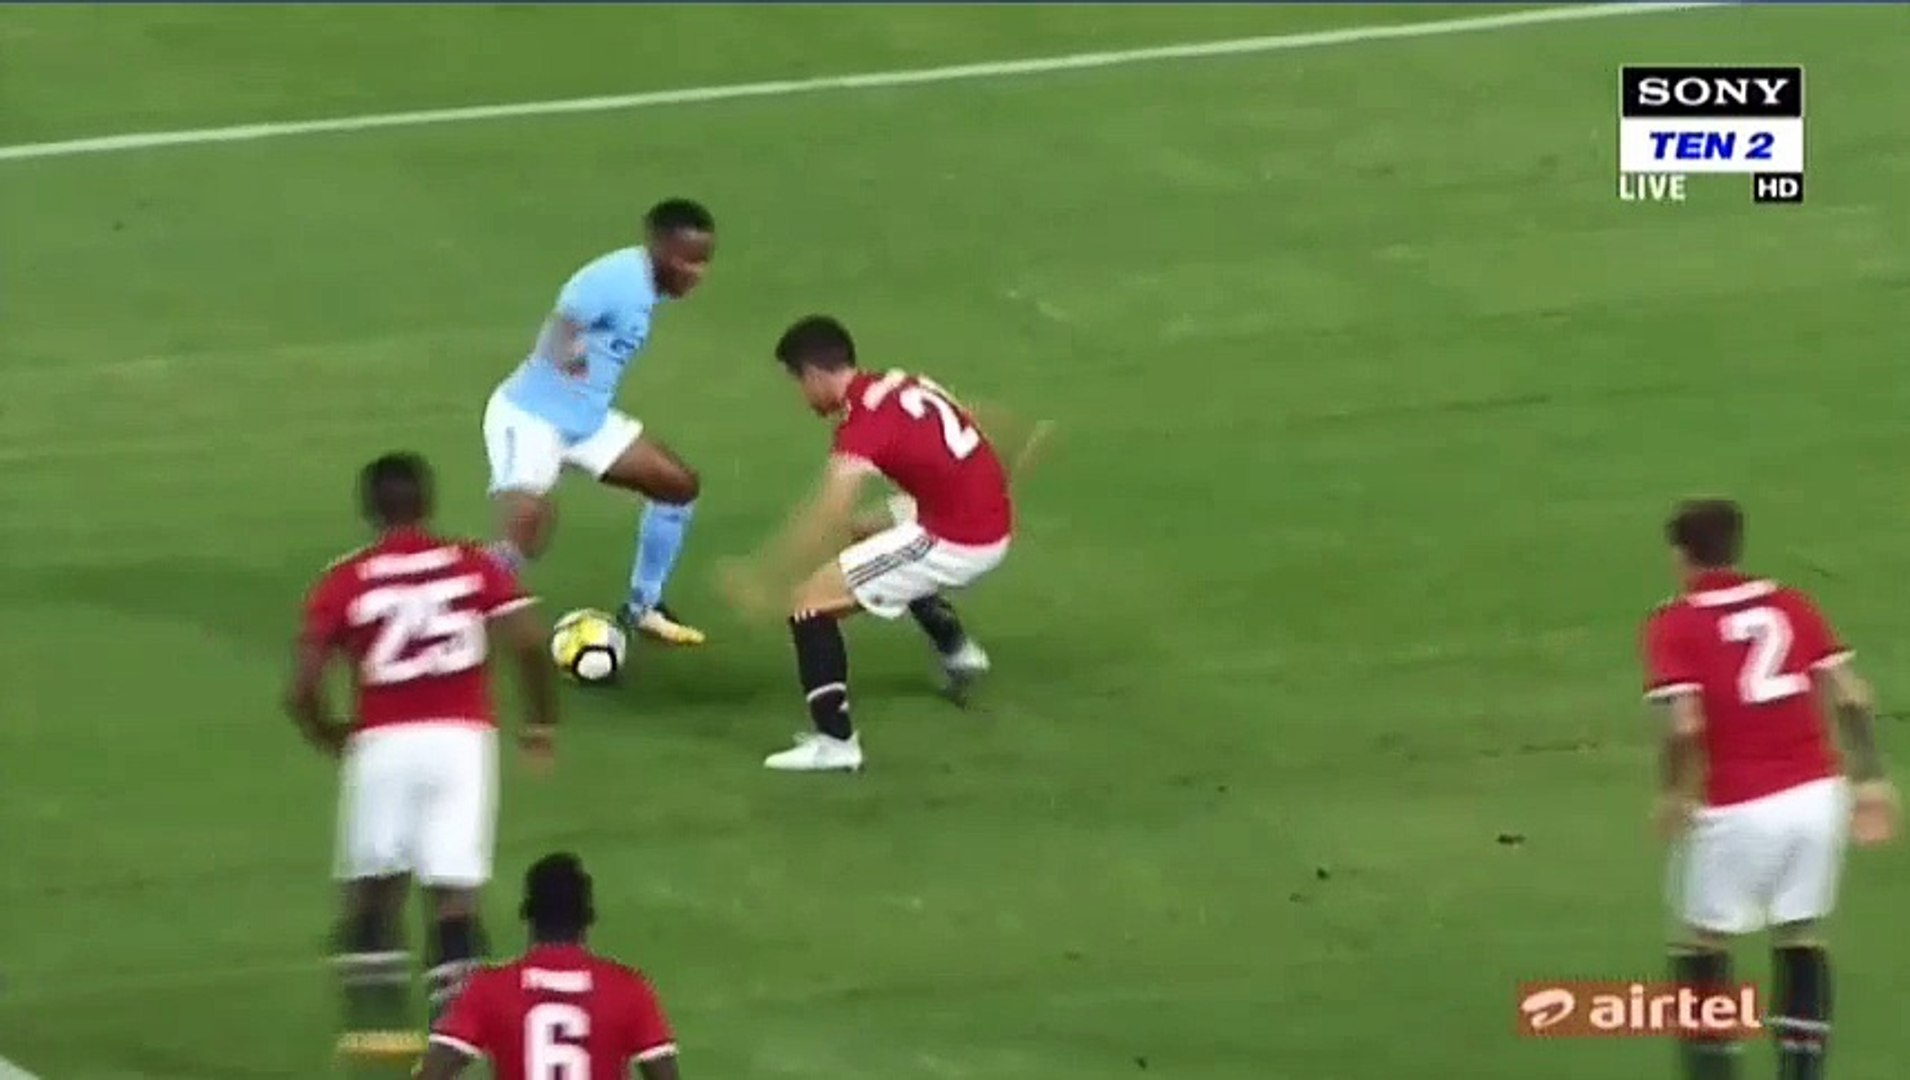 Raheem Sterling Incredible Miss HD - Manchester United 0-0 Manchester City 21.07.2017